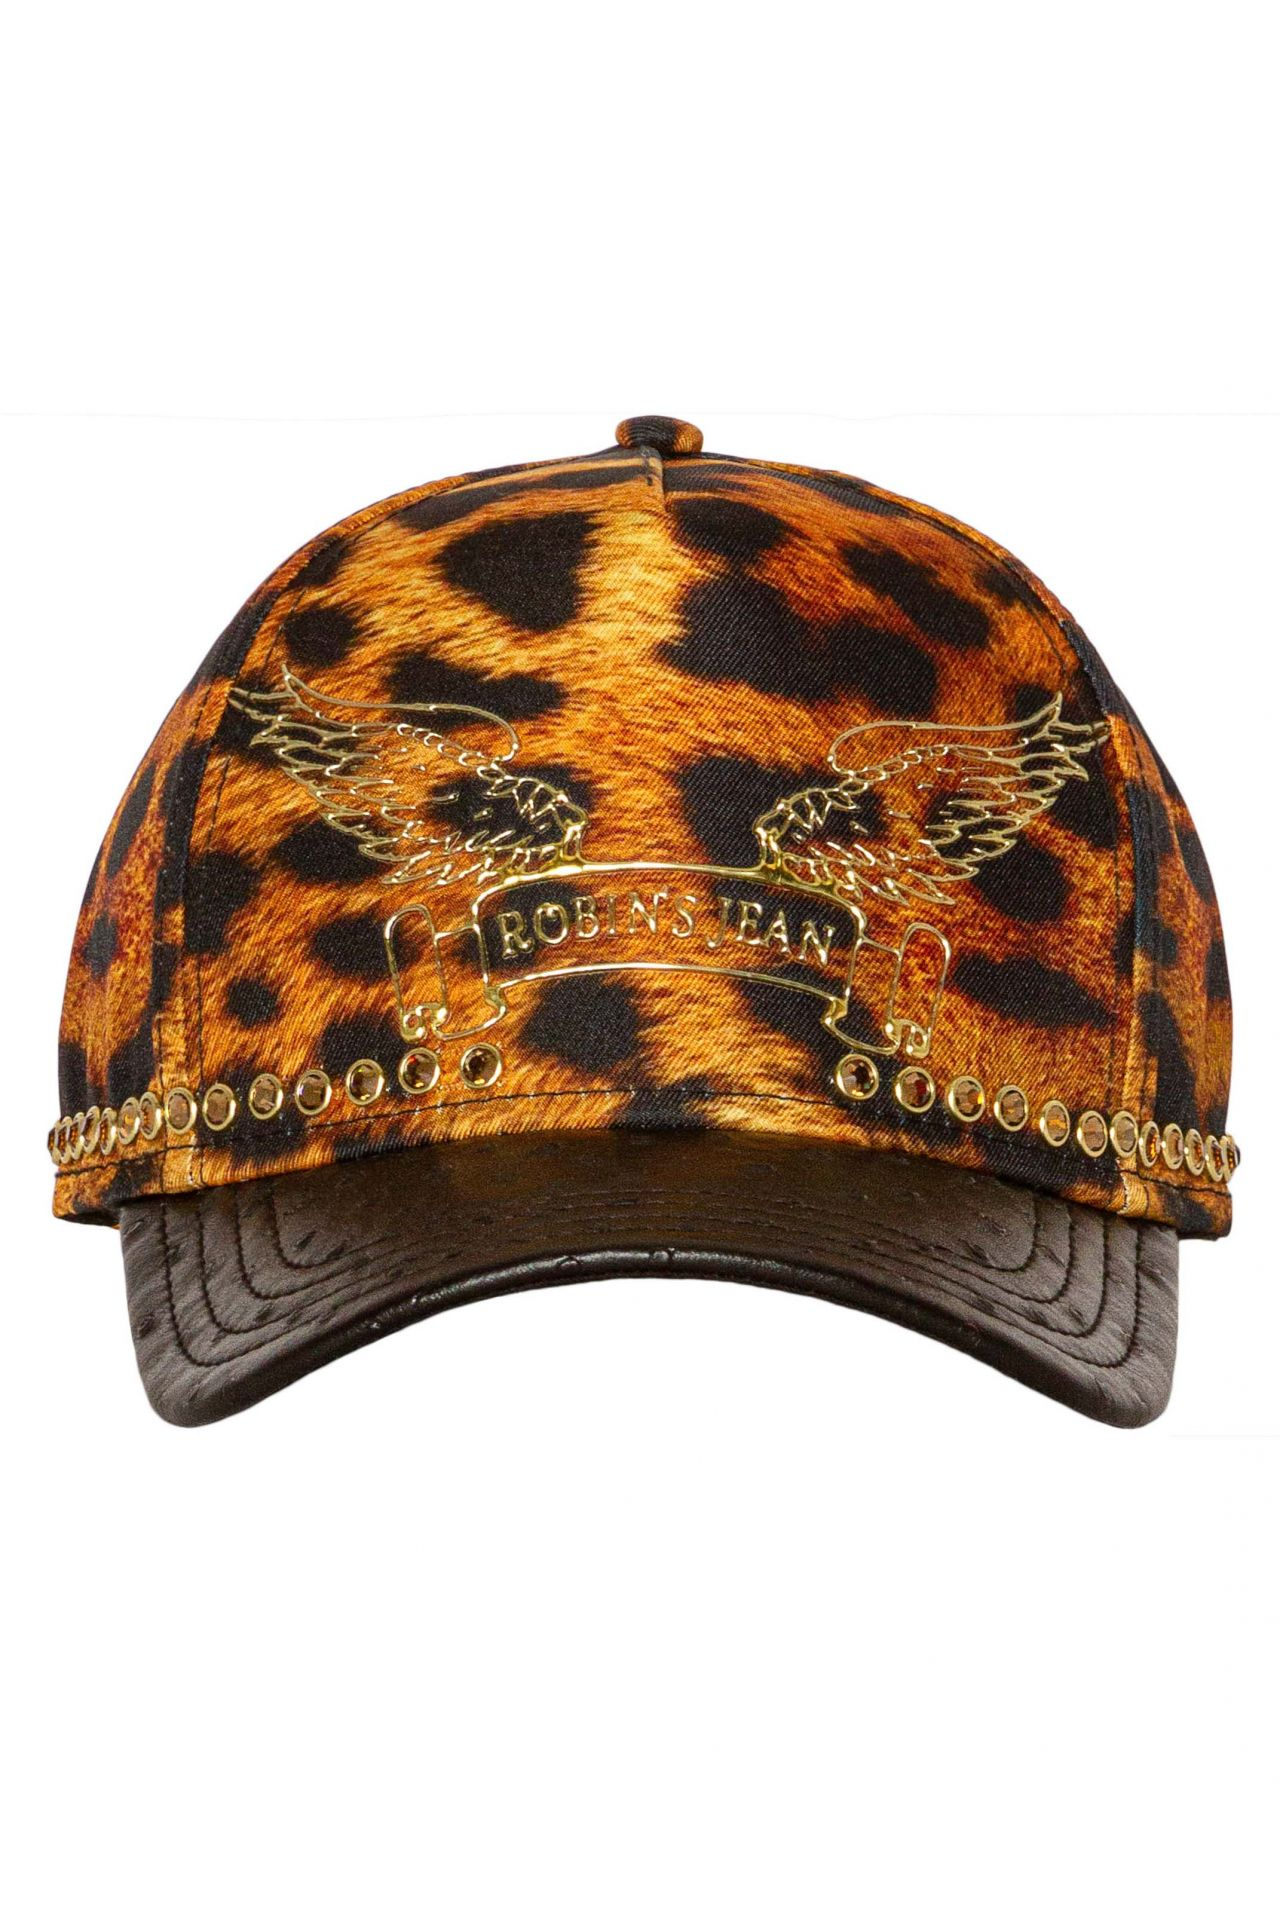 LEOPARD PRINT CAP WITH GOLD WINGS AND CRYSTALS